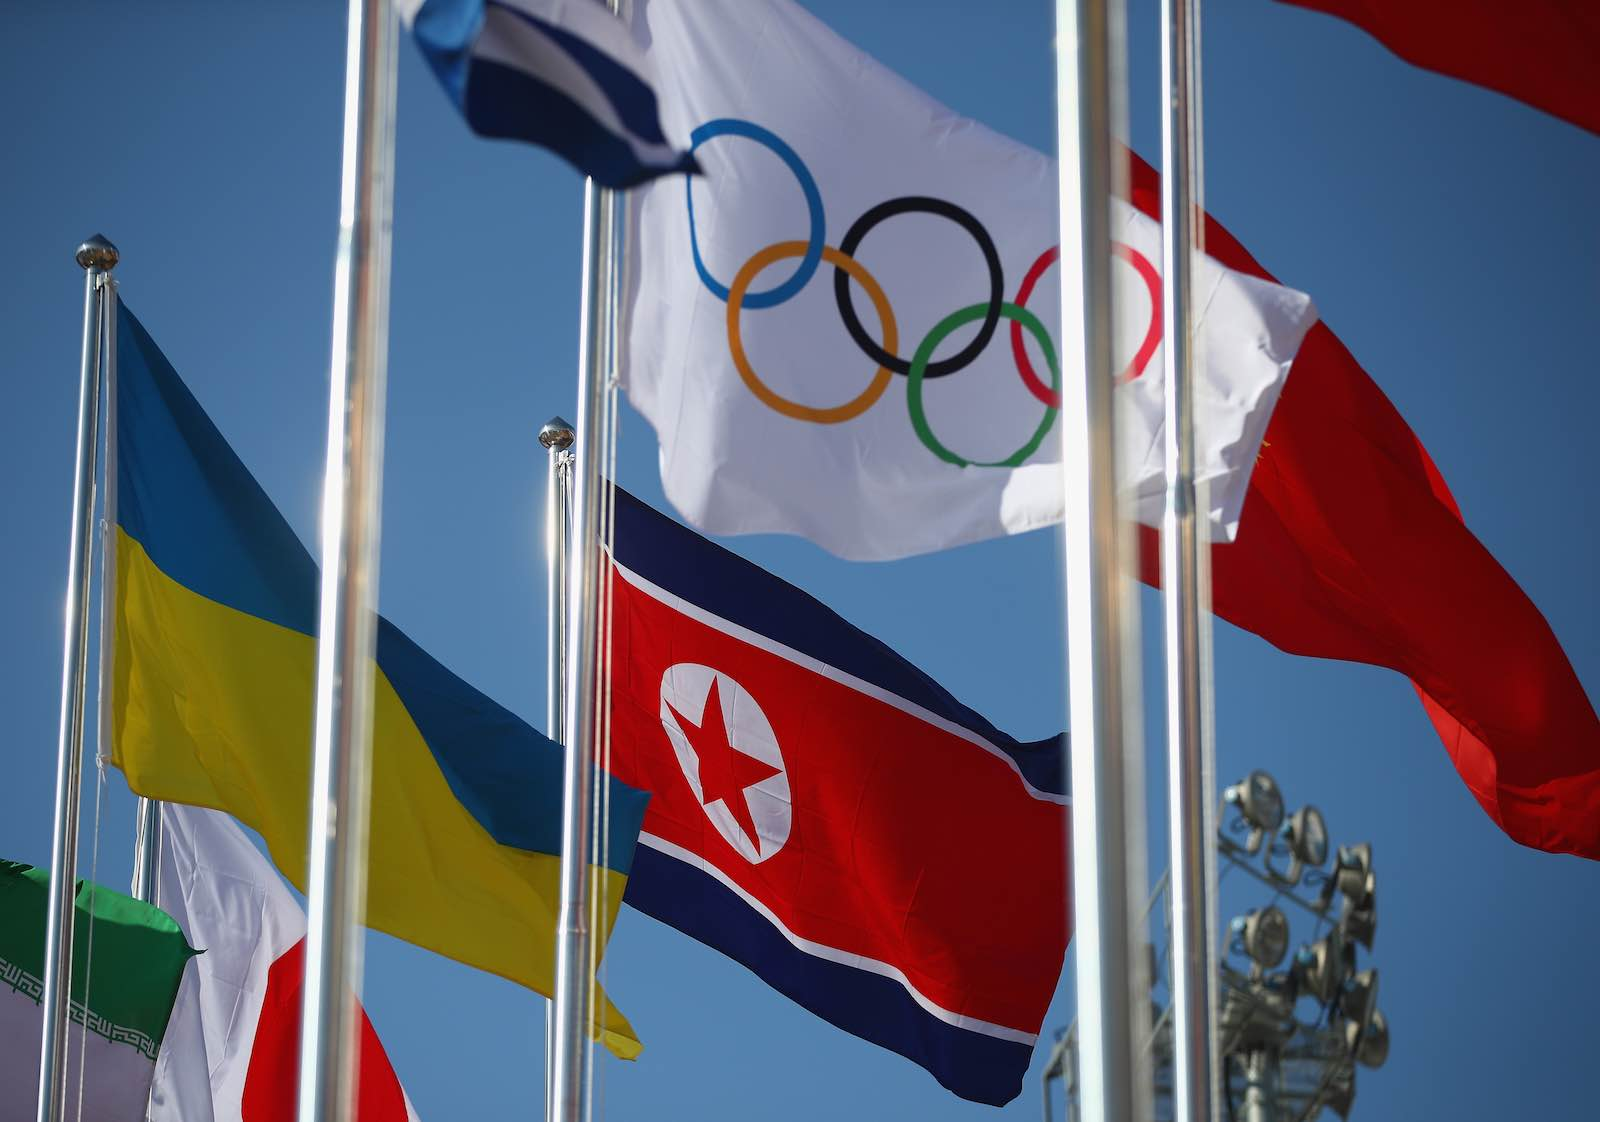 North Korean flag flies for the 2018 Olympic games in Pyeongchang, South Korea (Photo: Clive Mason/Getty Images)